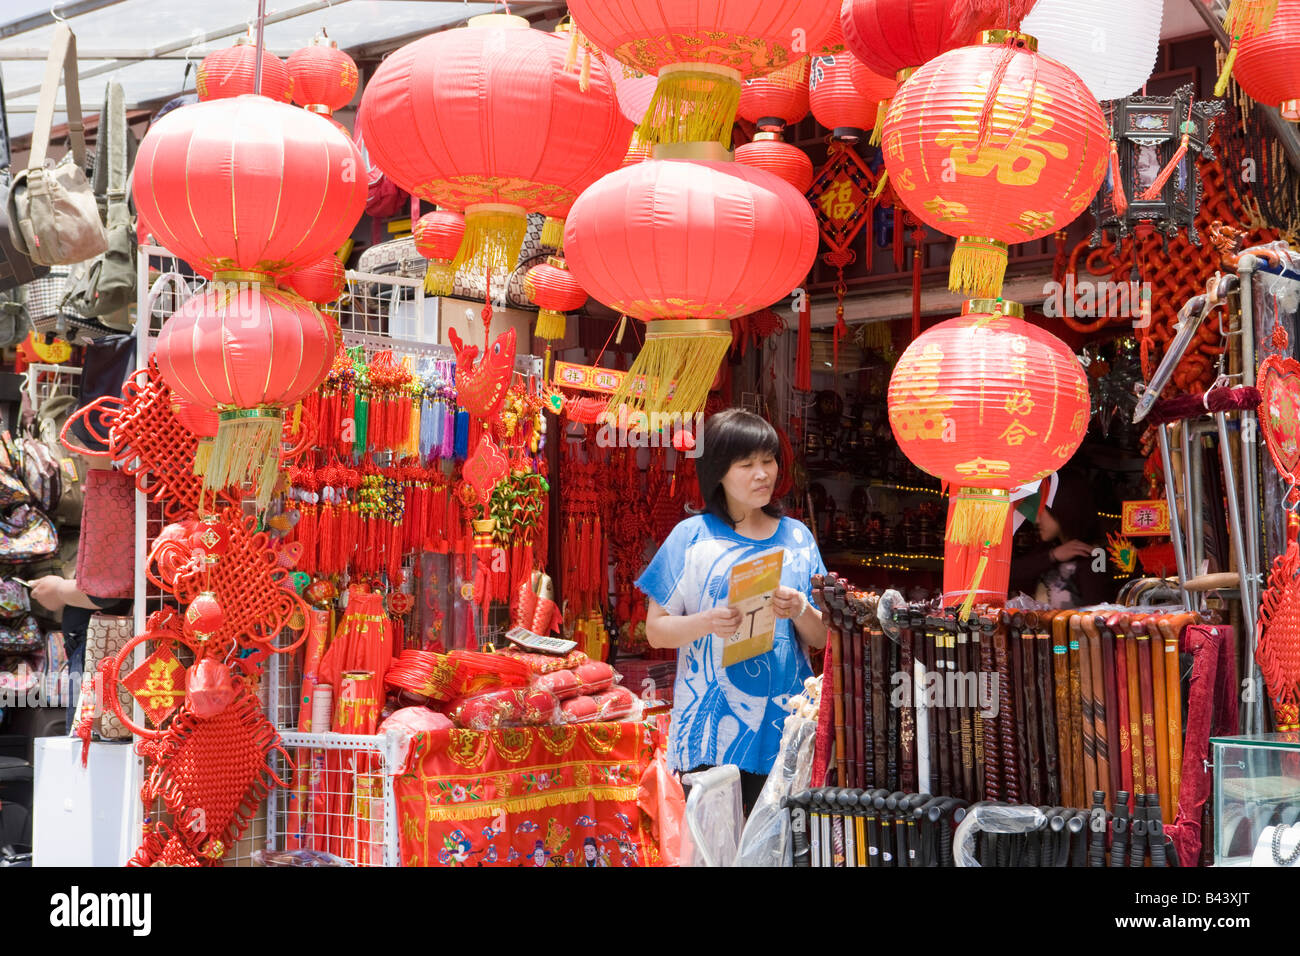 Chine Shanghai Chinese lantern shop Nanjing Road Photo Stock